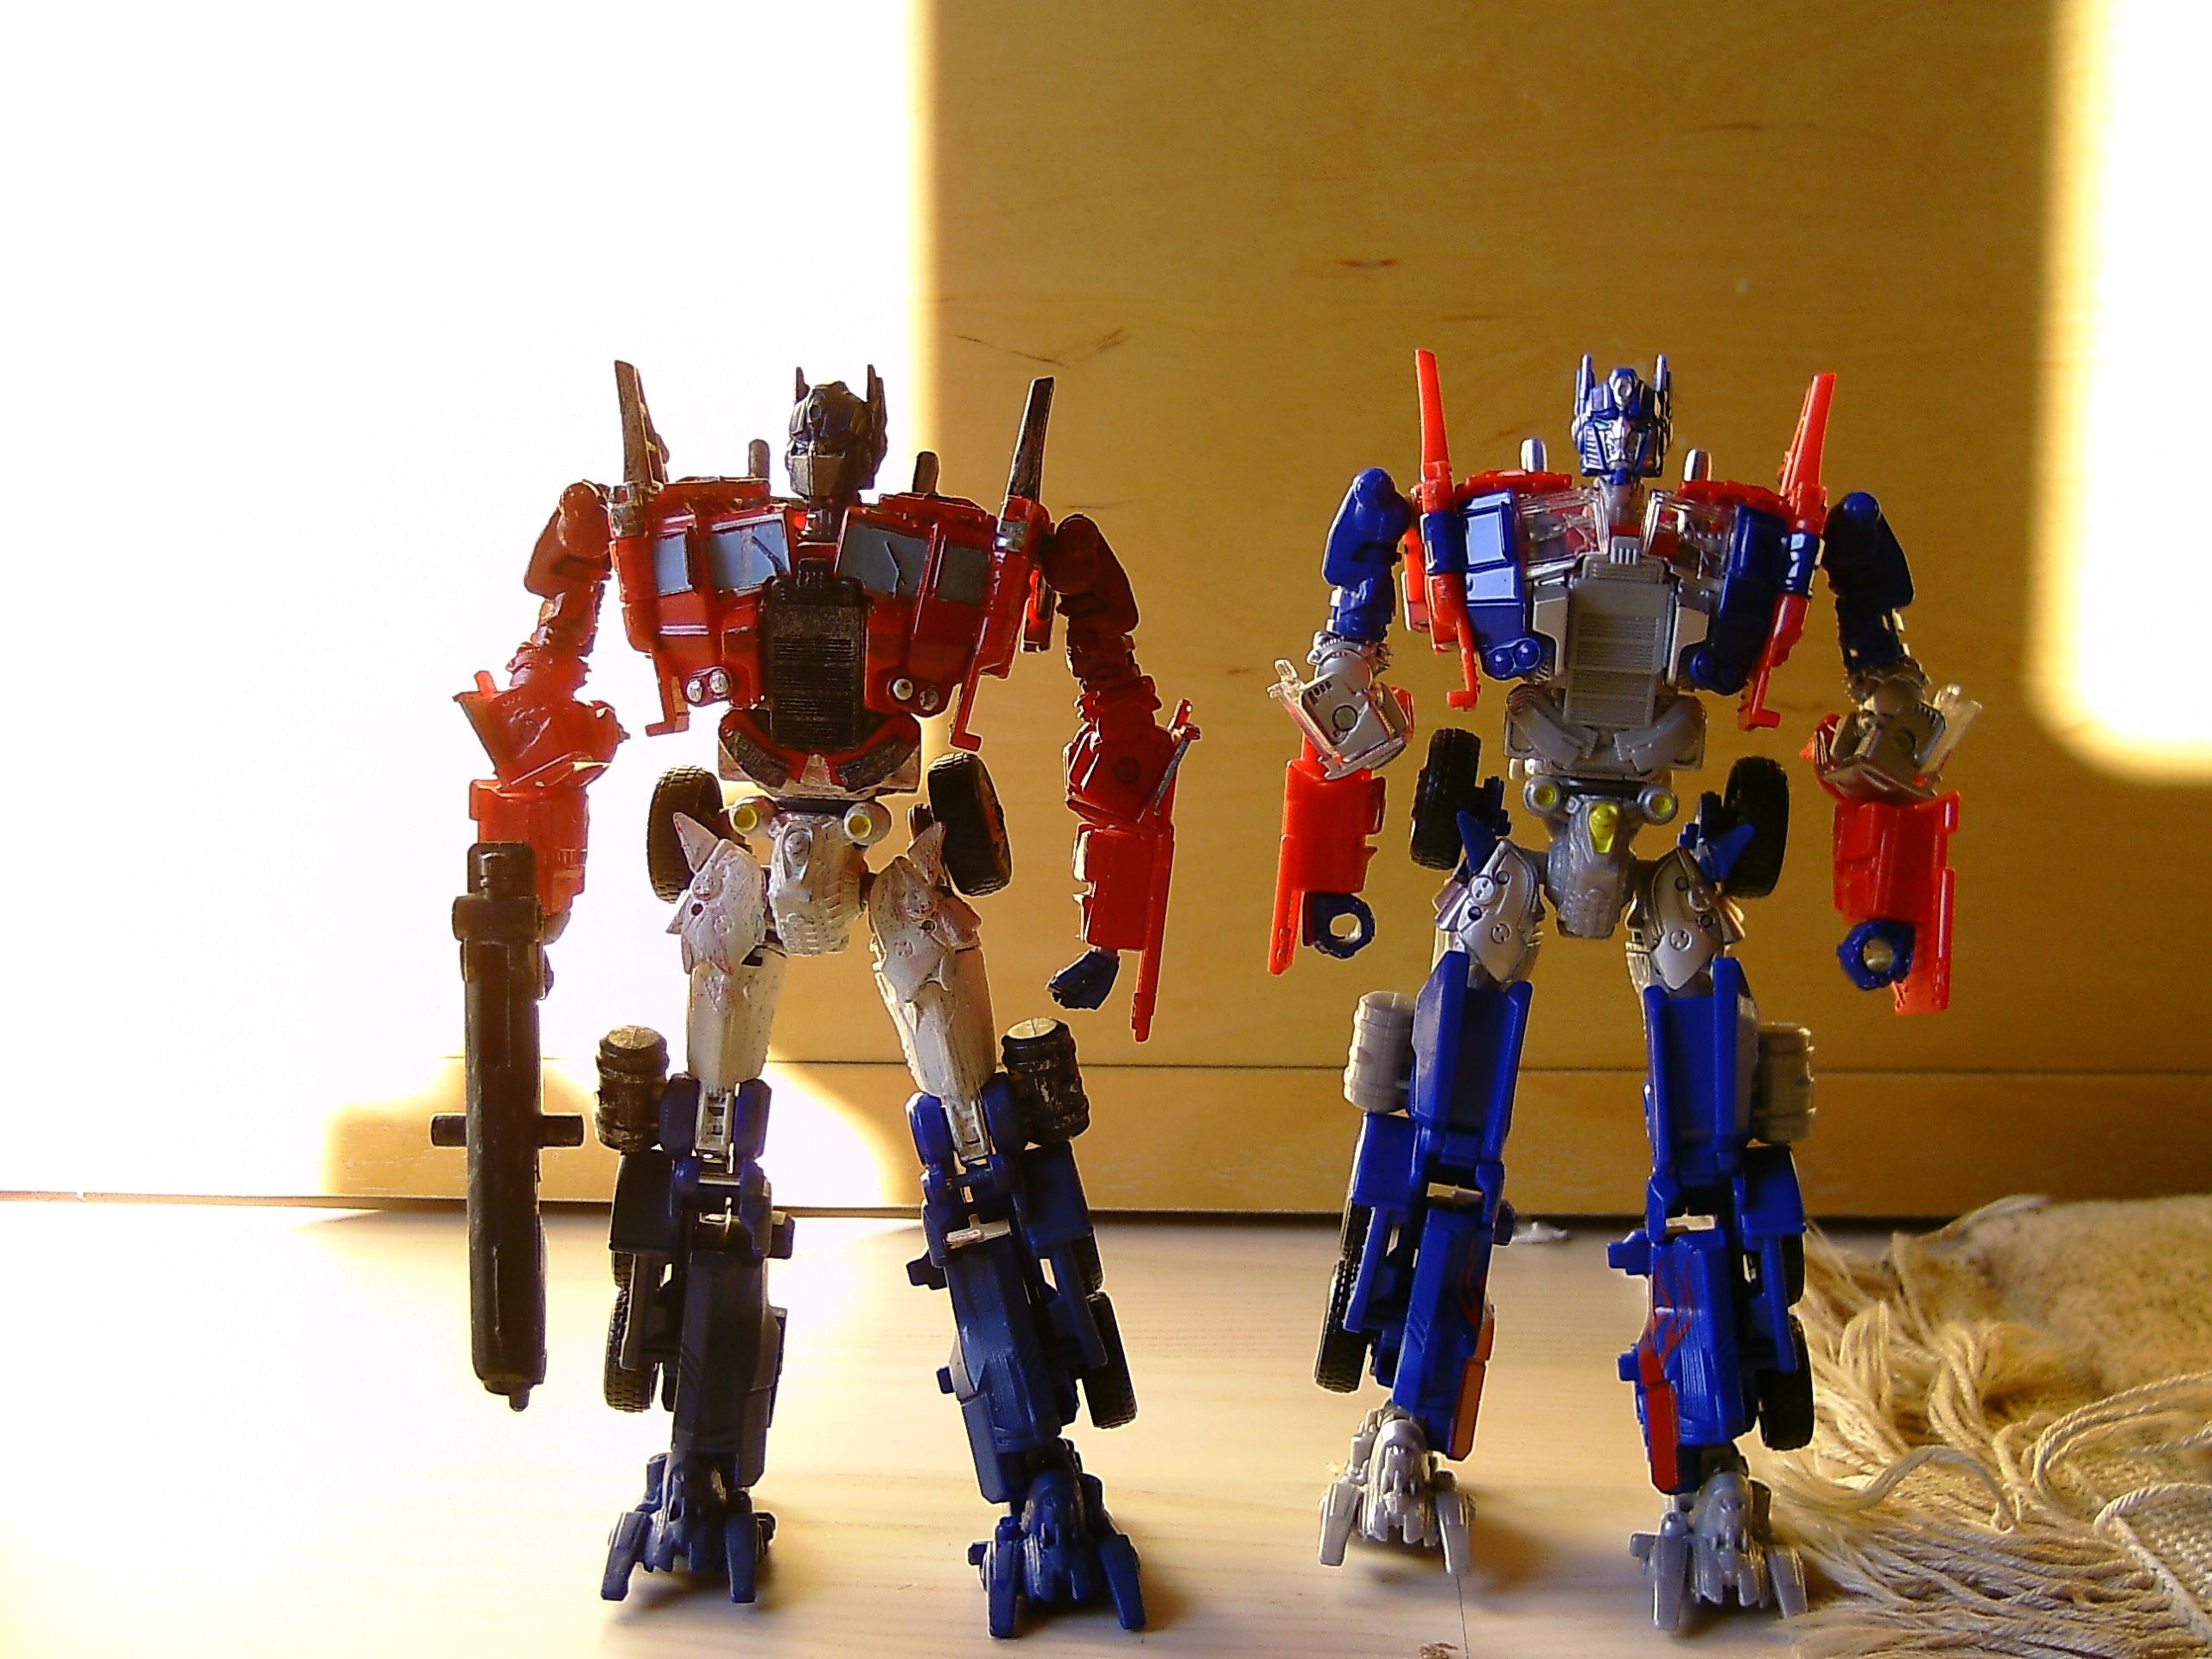 Evasion mode optimus prime repaint faceplate added ball jointed hands repainted by